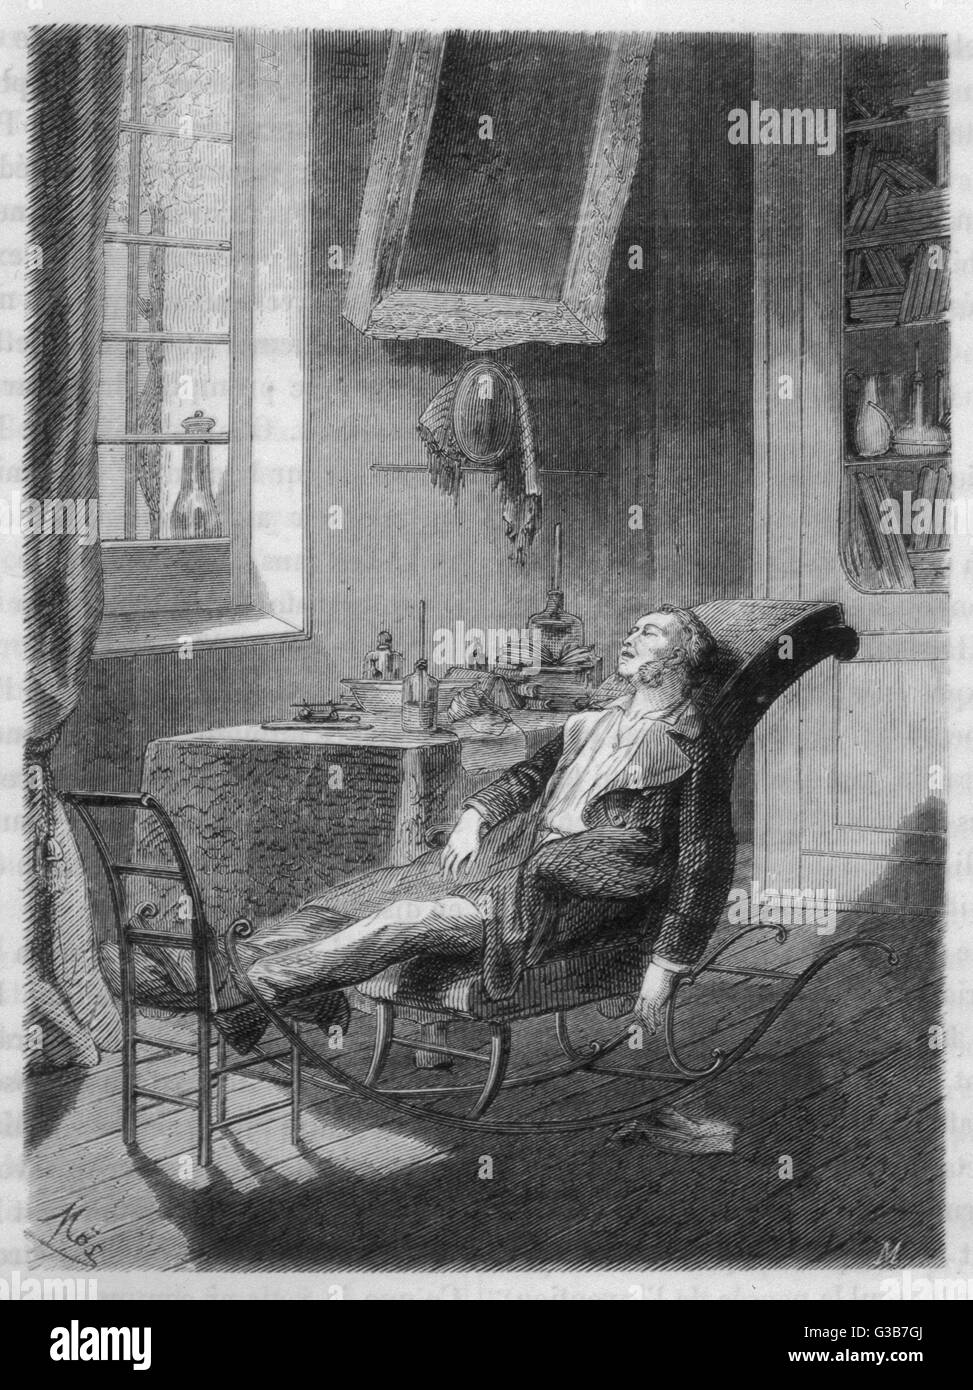 Charles Jackson experiments  on himself with sulphuric  ether        Date: 1842 - Stock Image